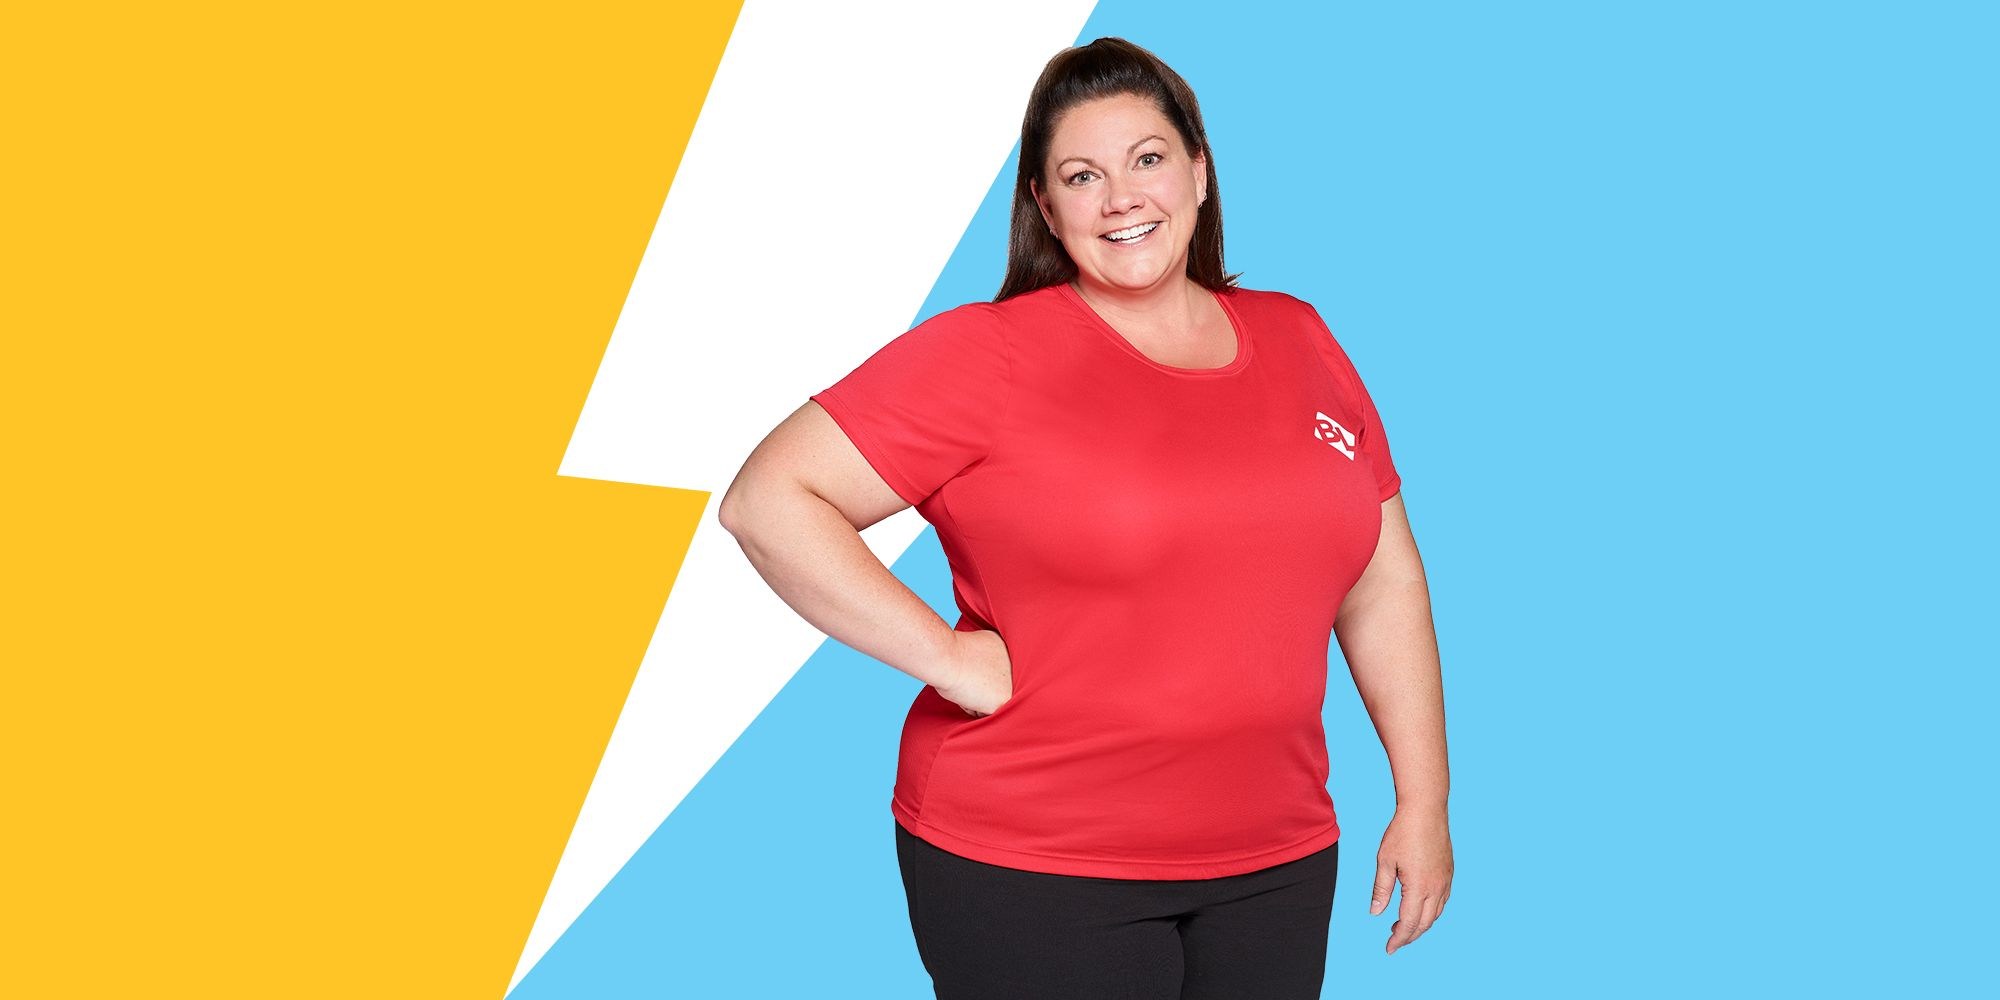 'The Biggest Loser' Contestant Teri Aguiar: 'I Was The Queen Of Hiding My Body In Photos'